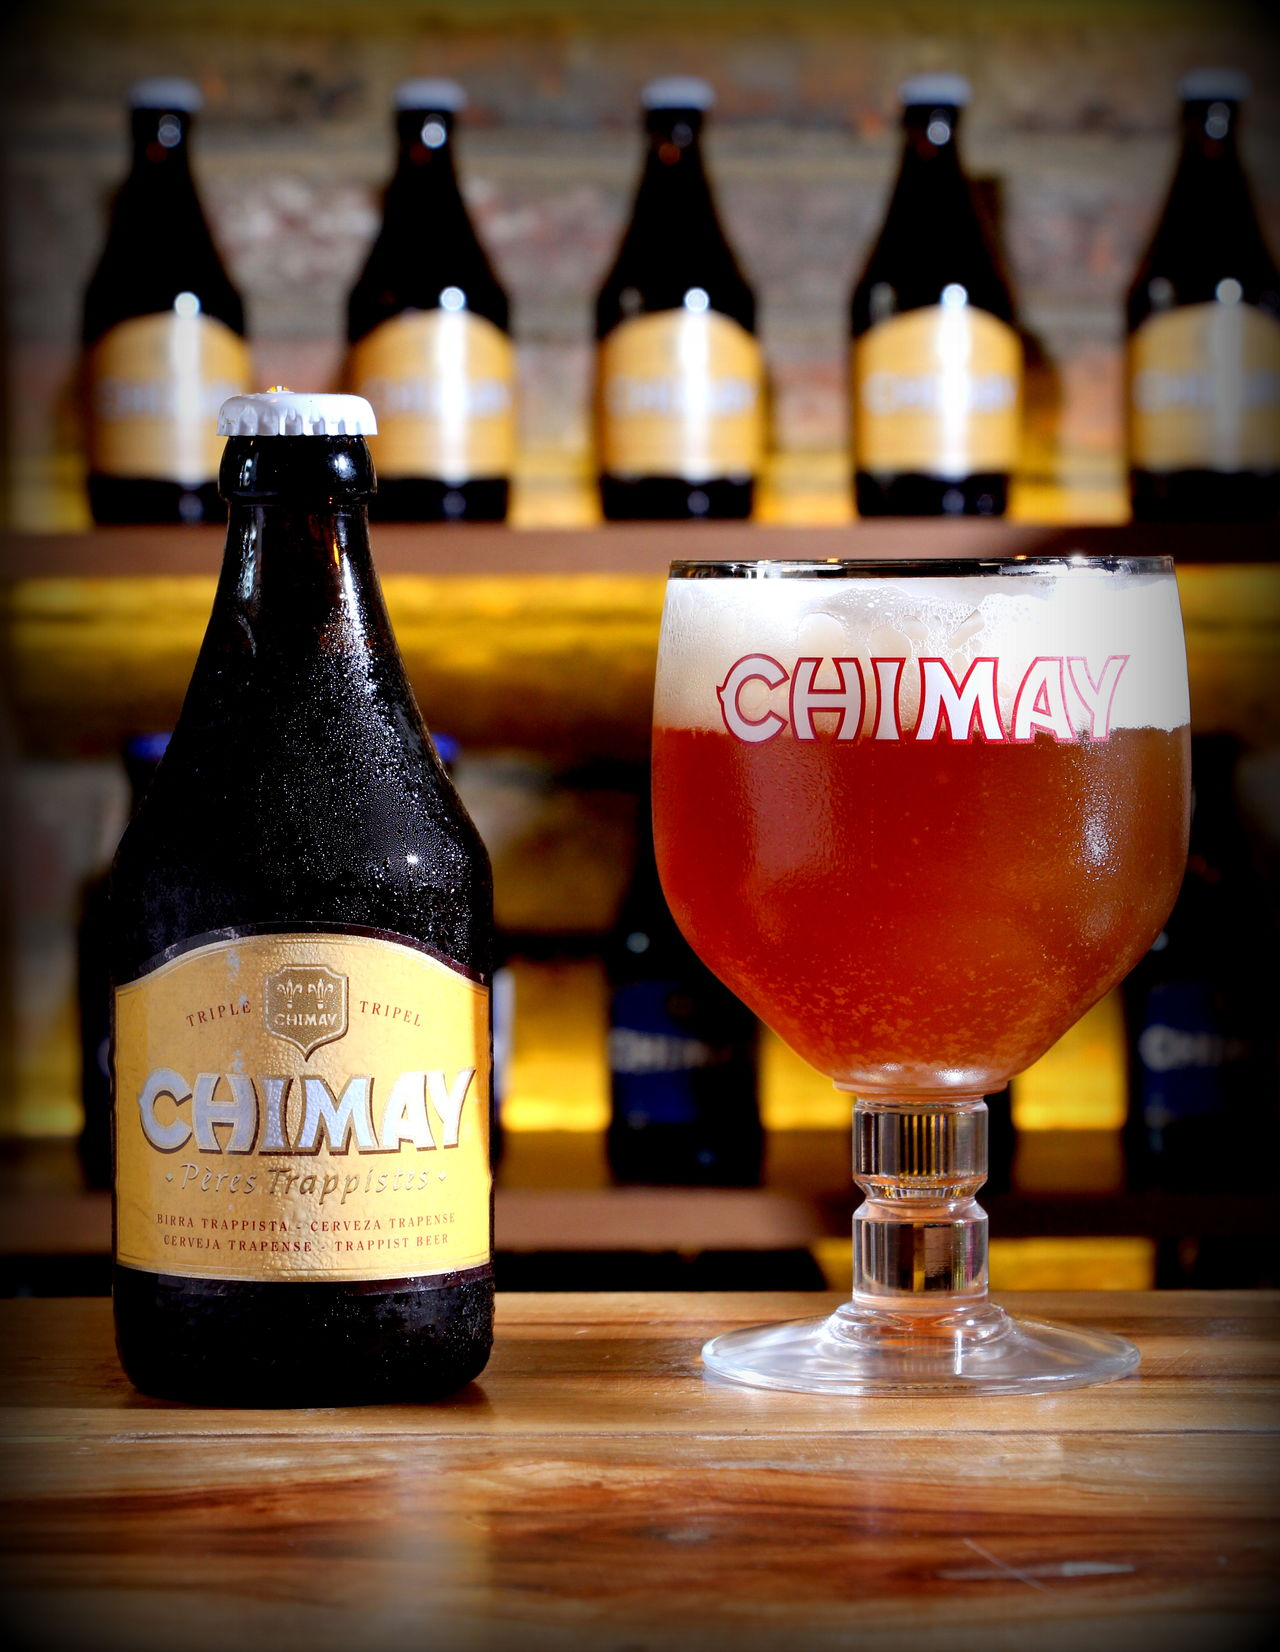 Liquid Lunch Everything In Its Place Chimay Chimay Beer Beer Beer Time Beer Glass Beer Bottle Beer Bottles Bar Beer Bar Monk Beer Trappist Beautifully Organized